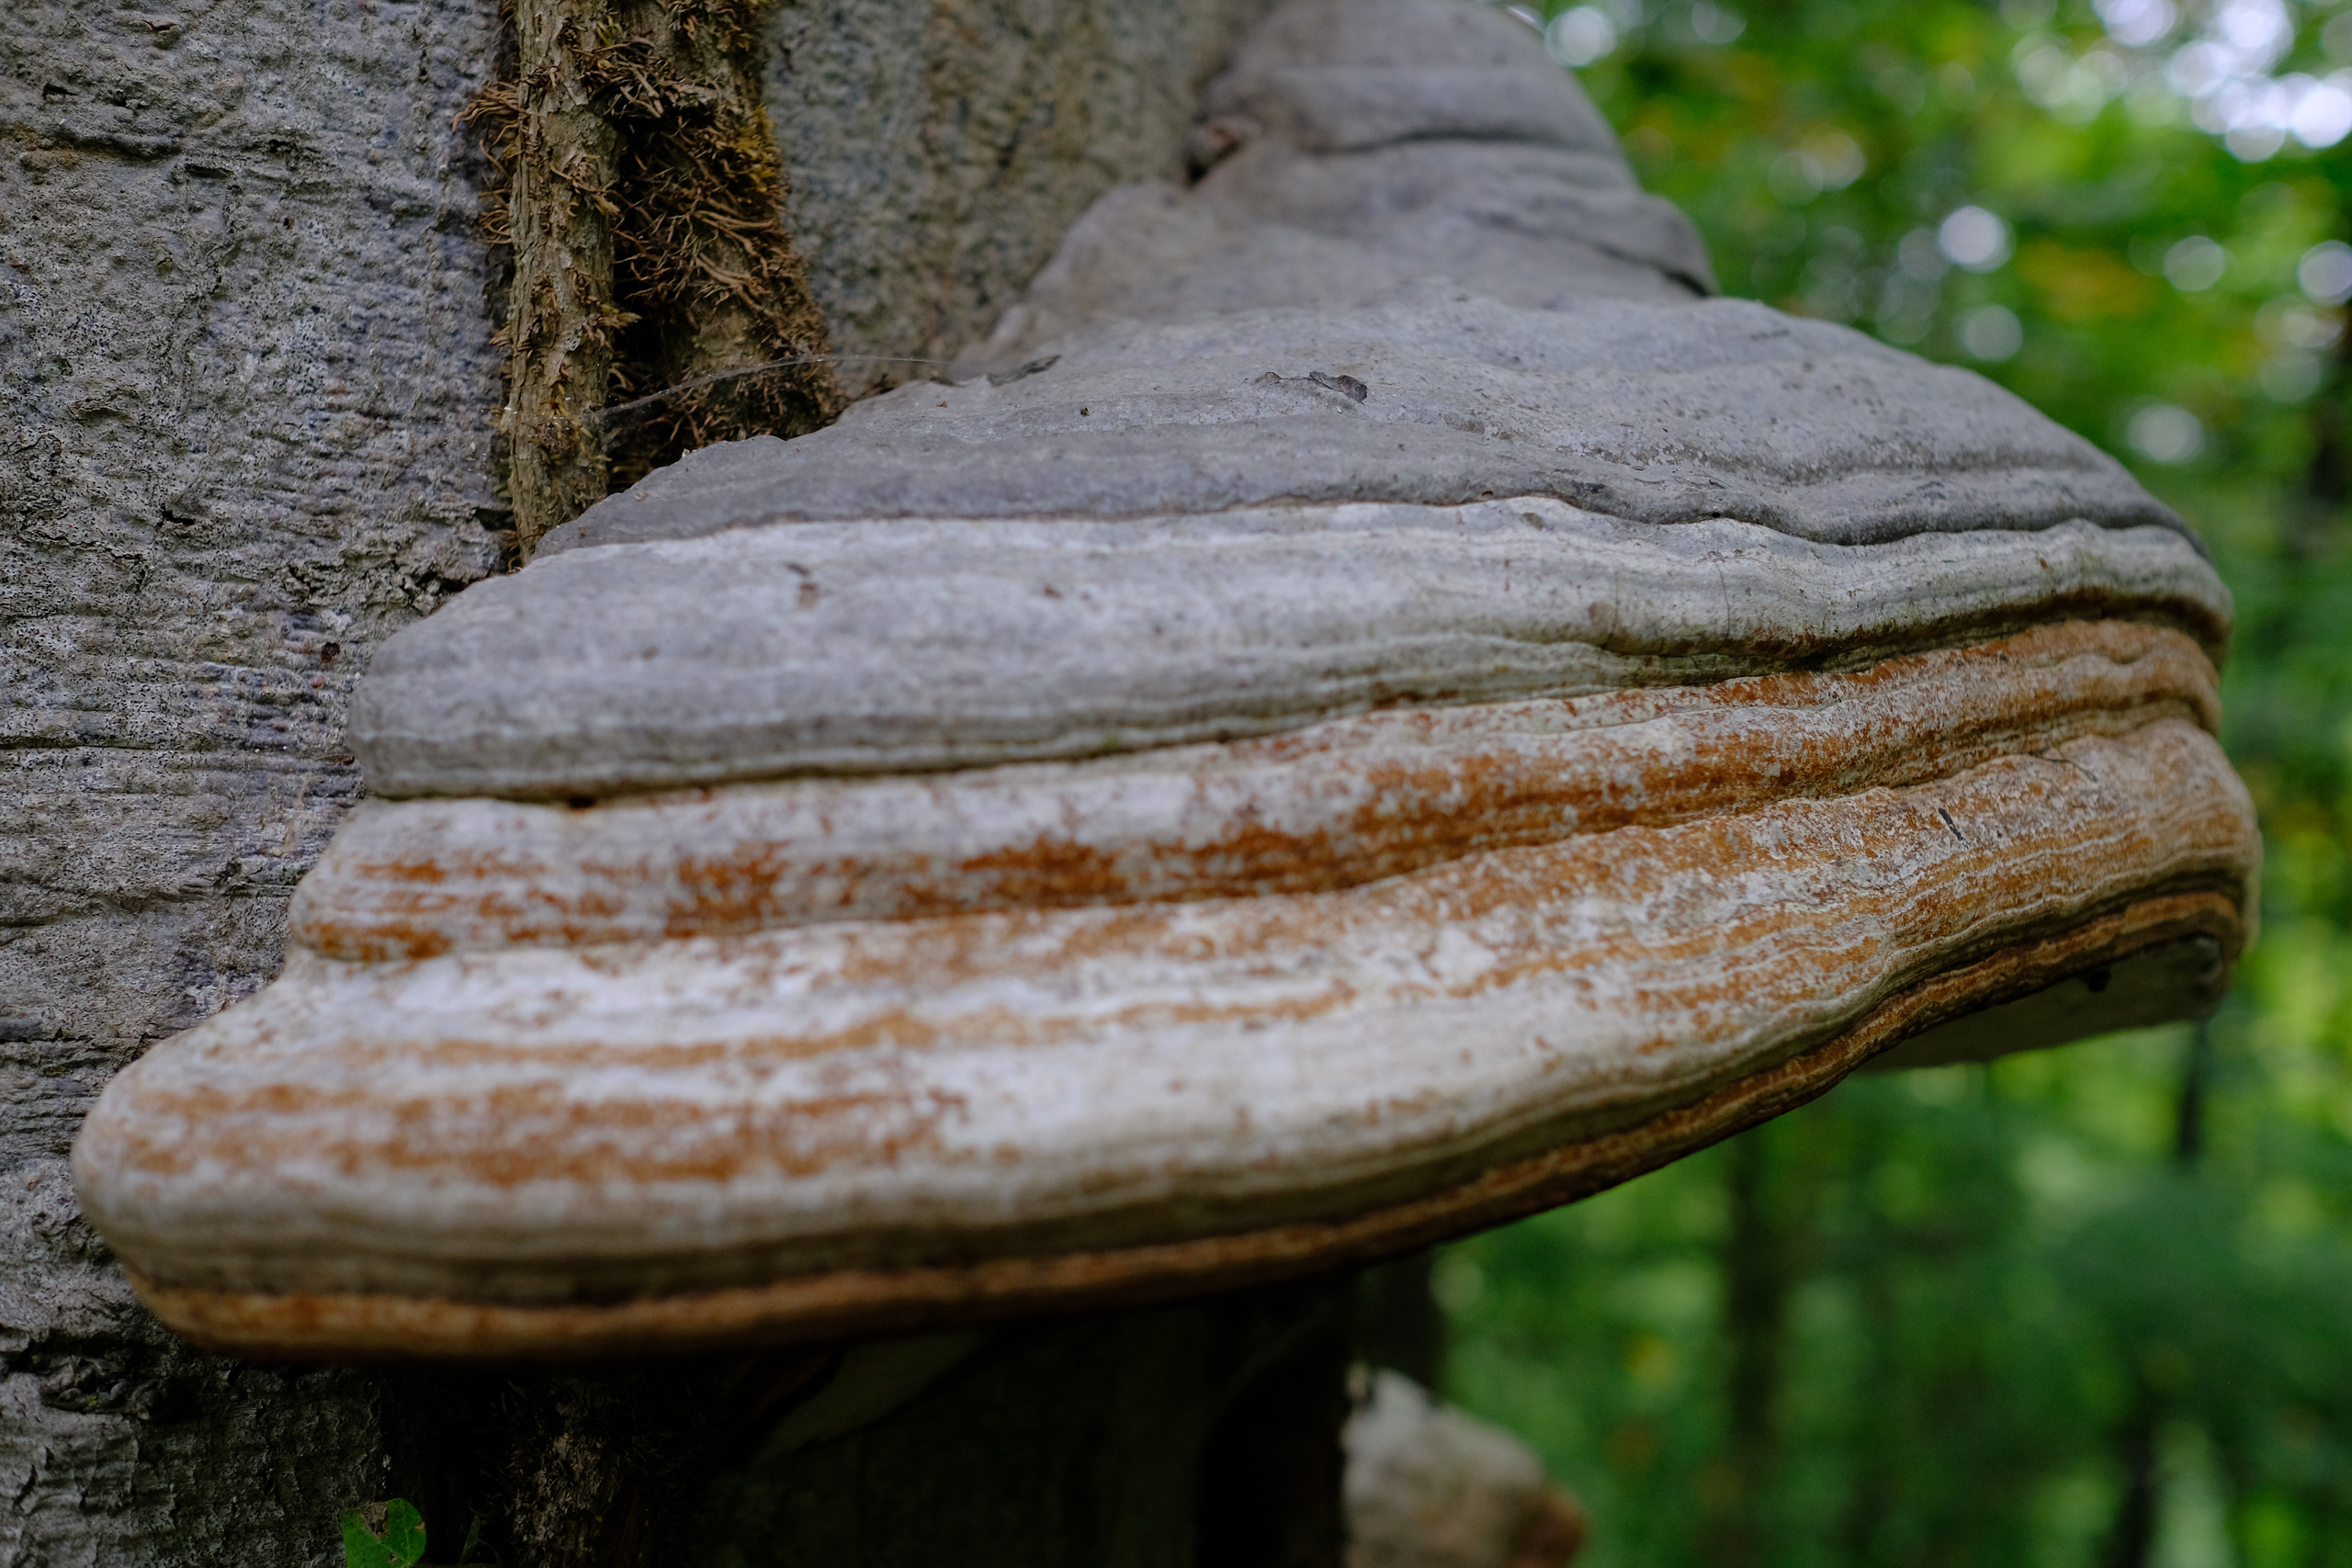 Timder fungus on a tree